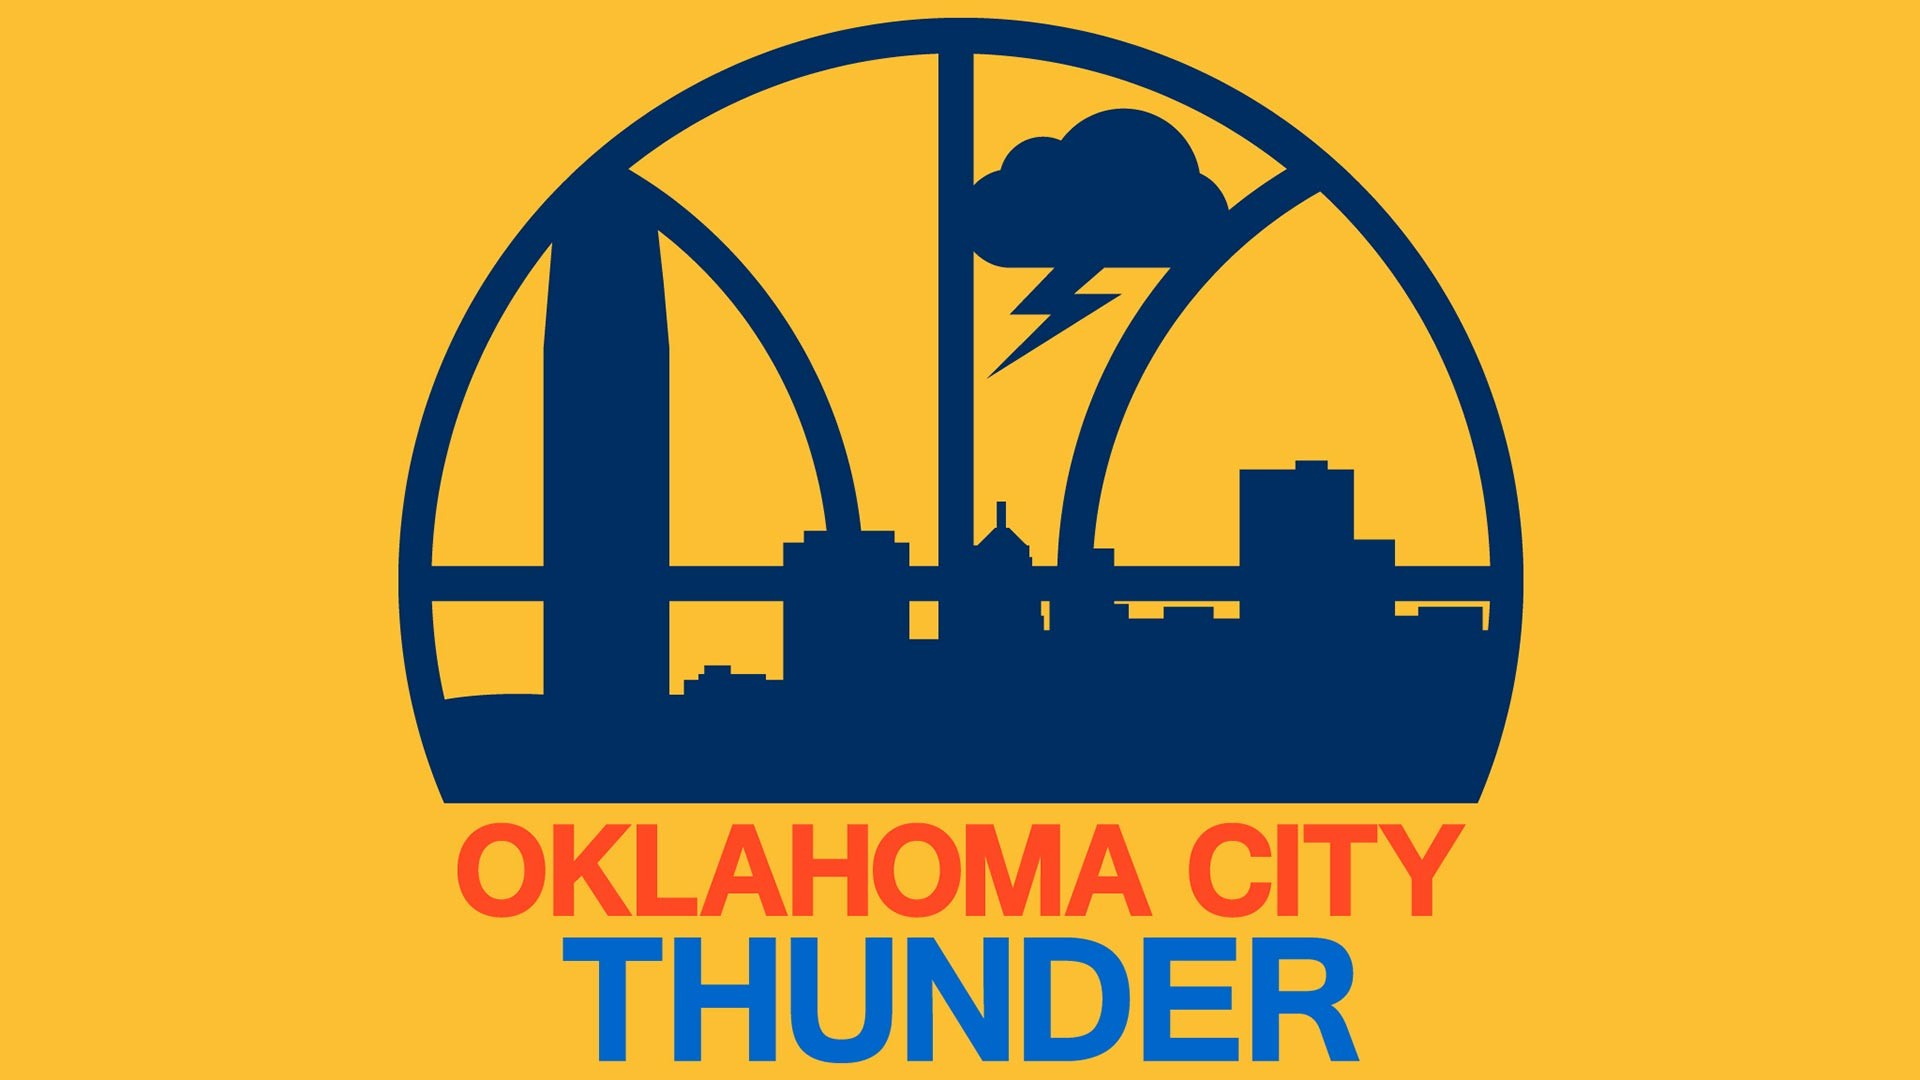 Oklahoma City Thunder Wallpaper Hd 69 Images